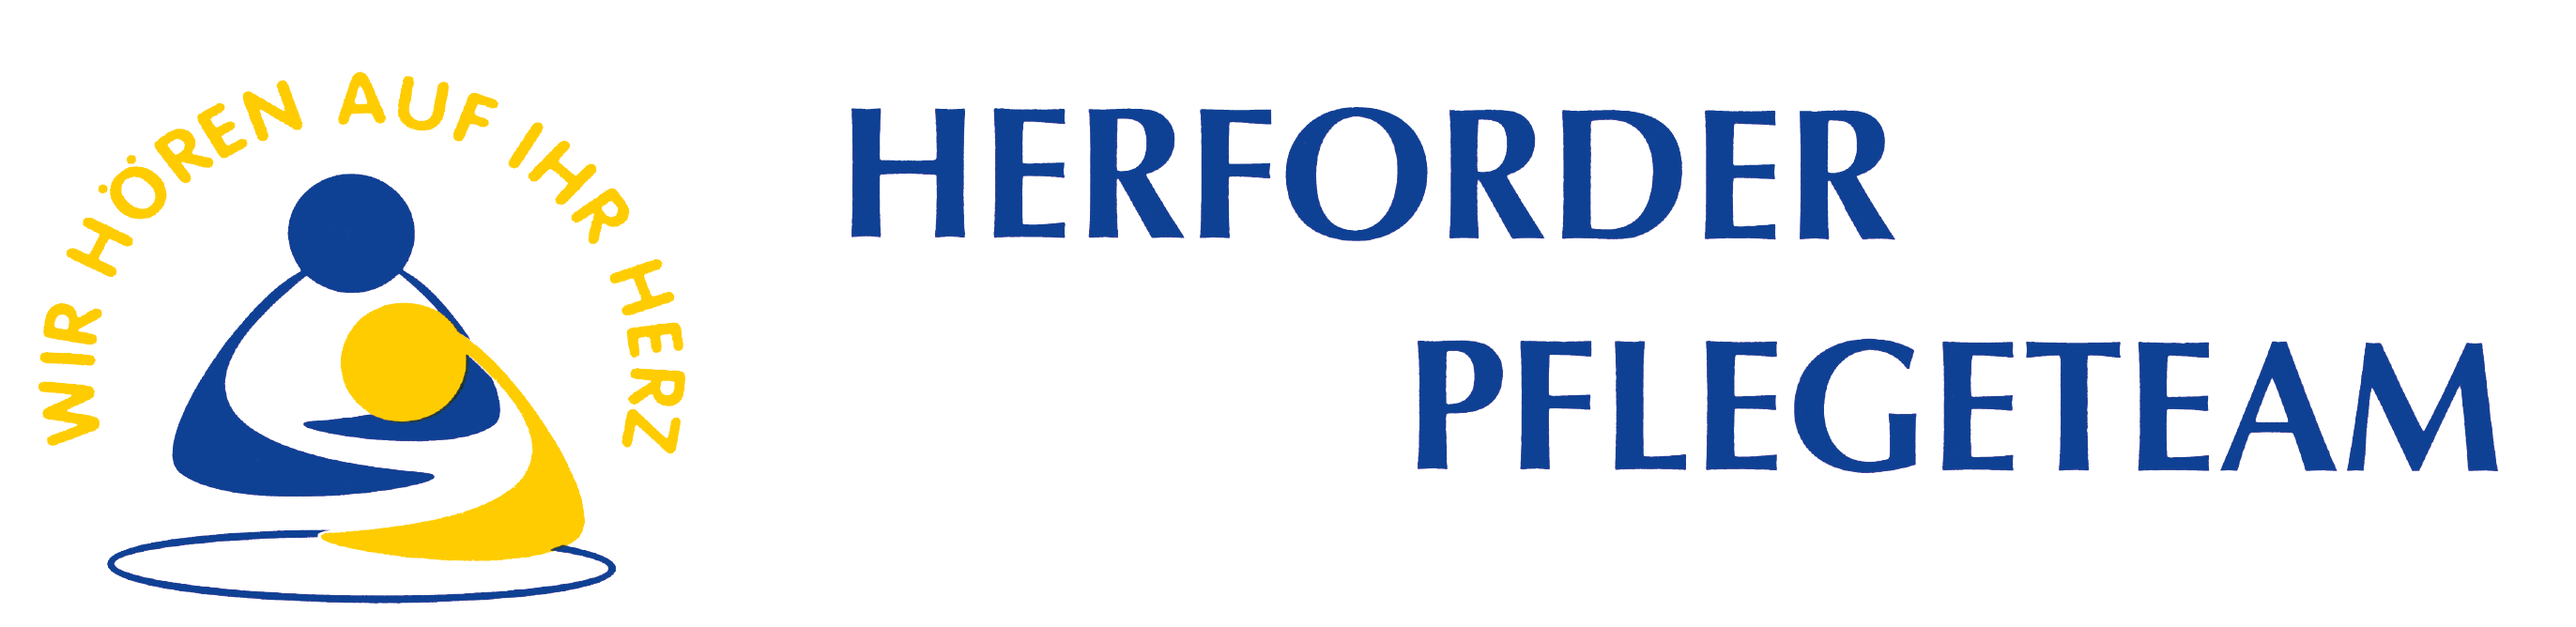 Herforder Pflegeteam